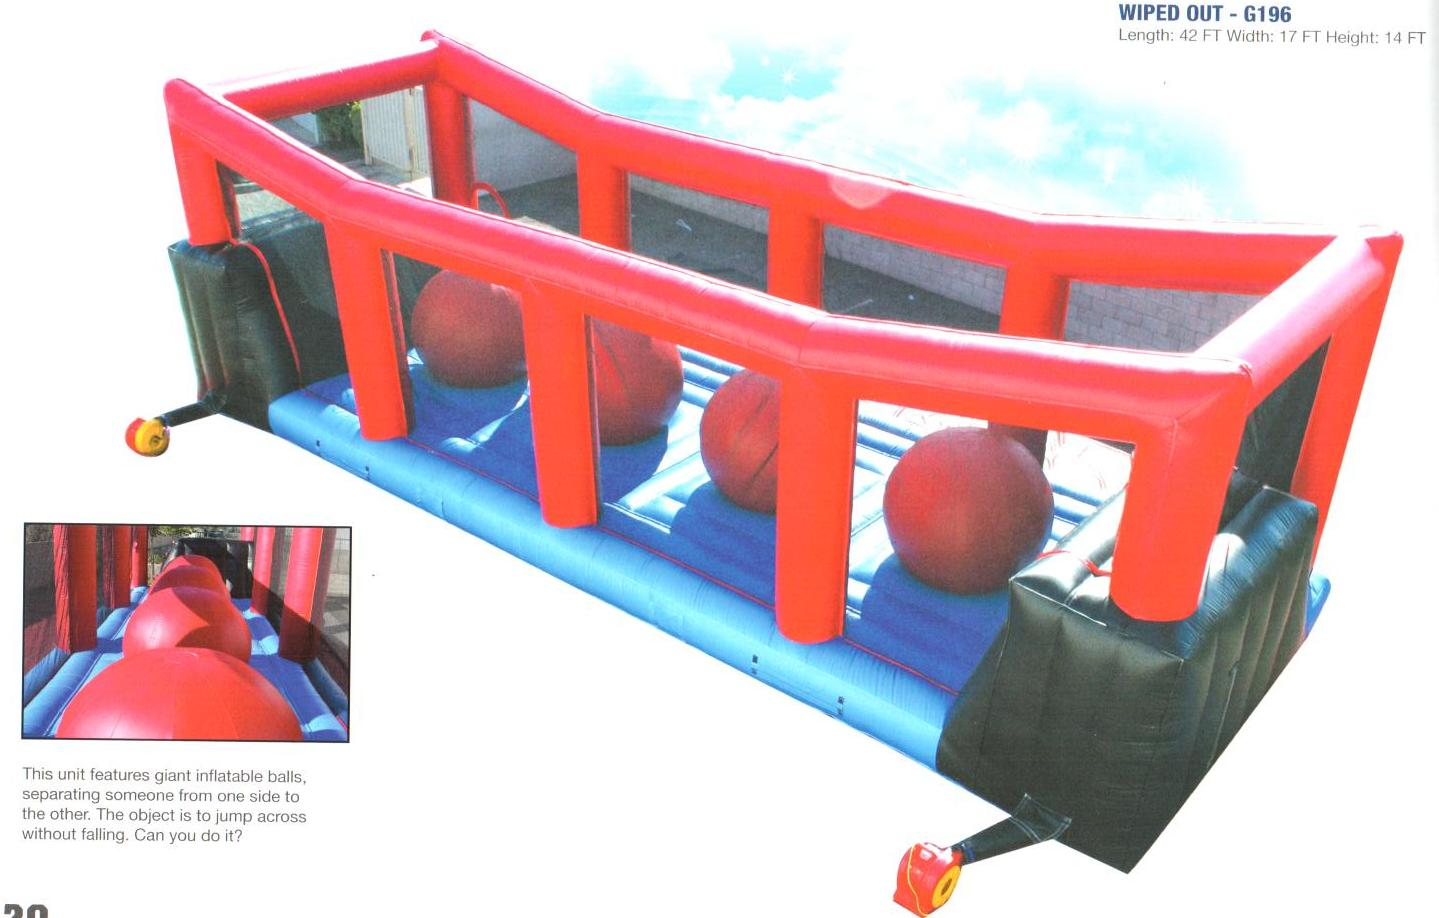 Kids and Adults alike will love competing on the Wiped Out. See if you can jump from Ball to Ball and get to the other side before wiping out. 45' l x 20' w x 17' h.